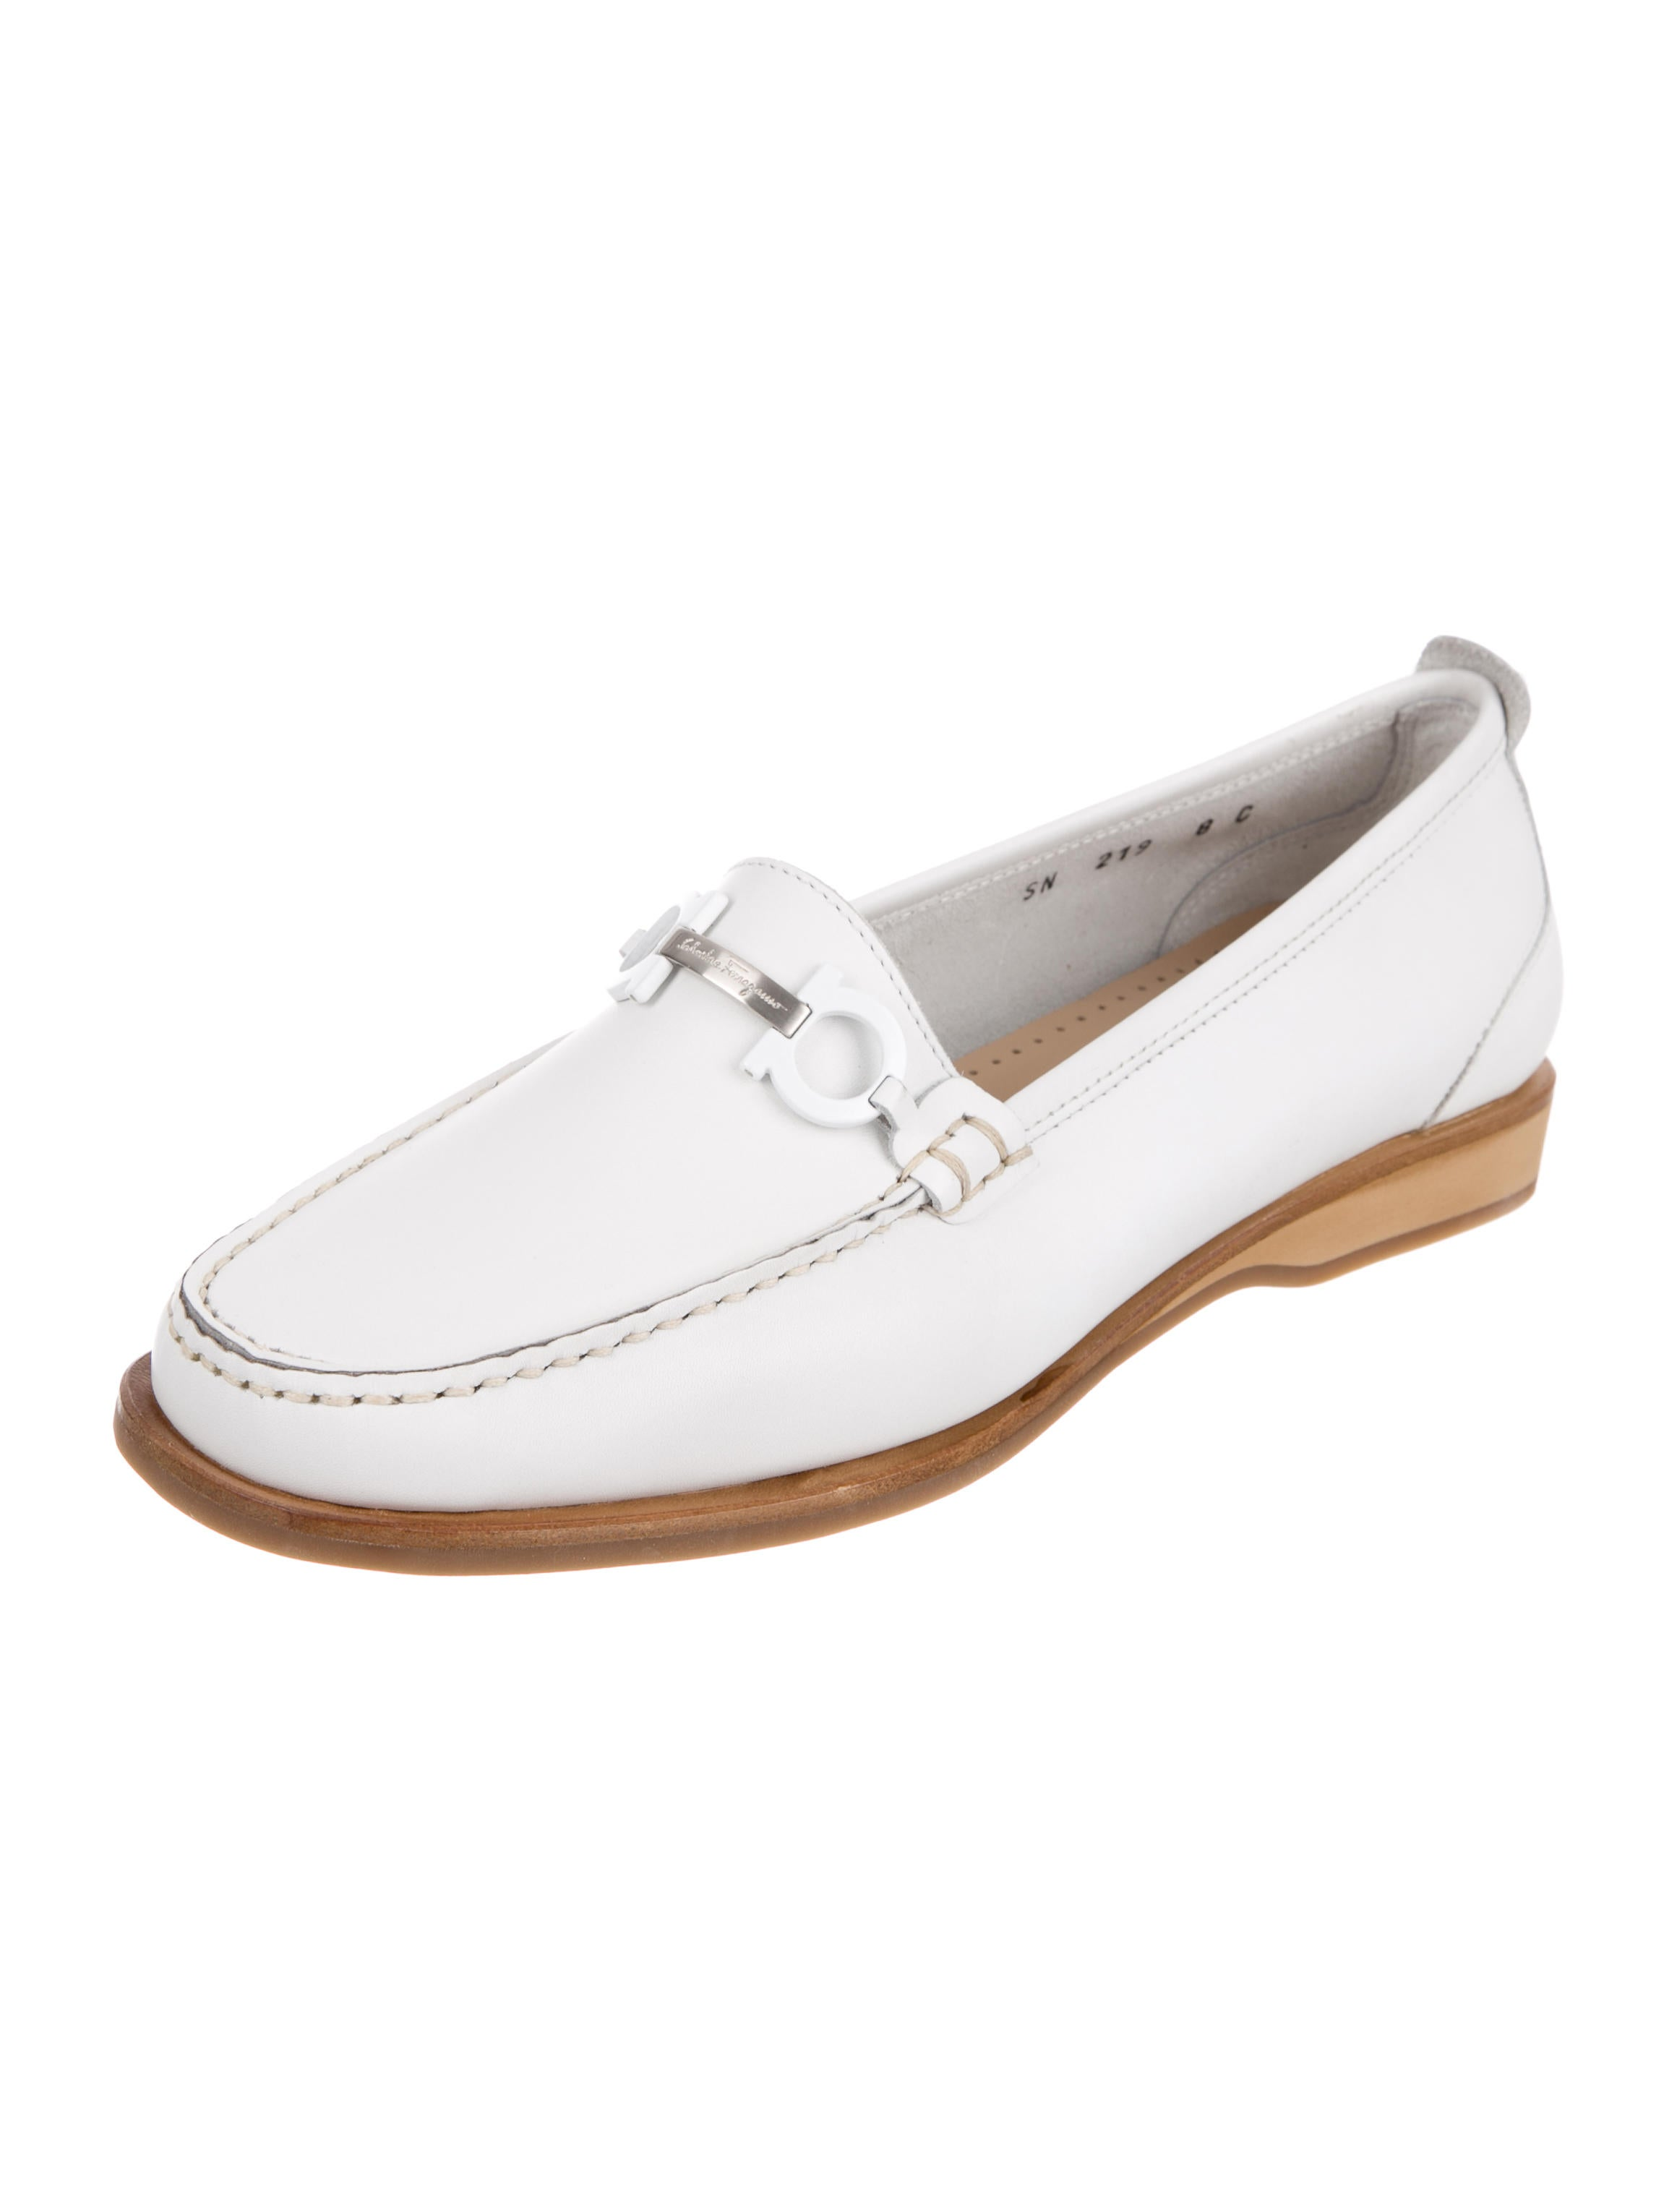 free shipping release dates Salvatore Ferragamo Riedito Gancini Loafers w/ Tags free shipping factory outlet ykvTd5BG